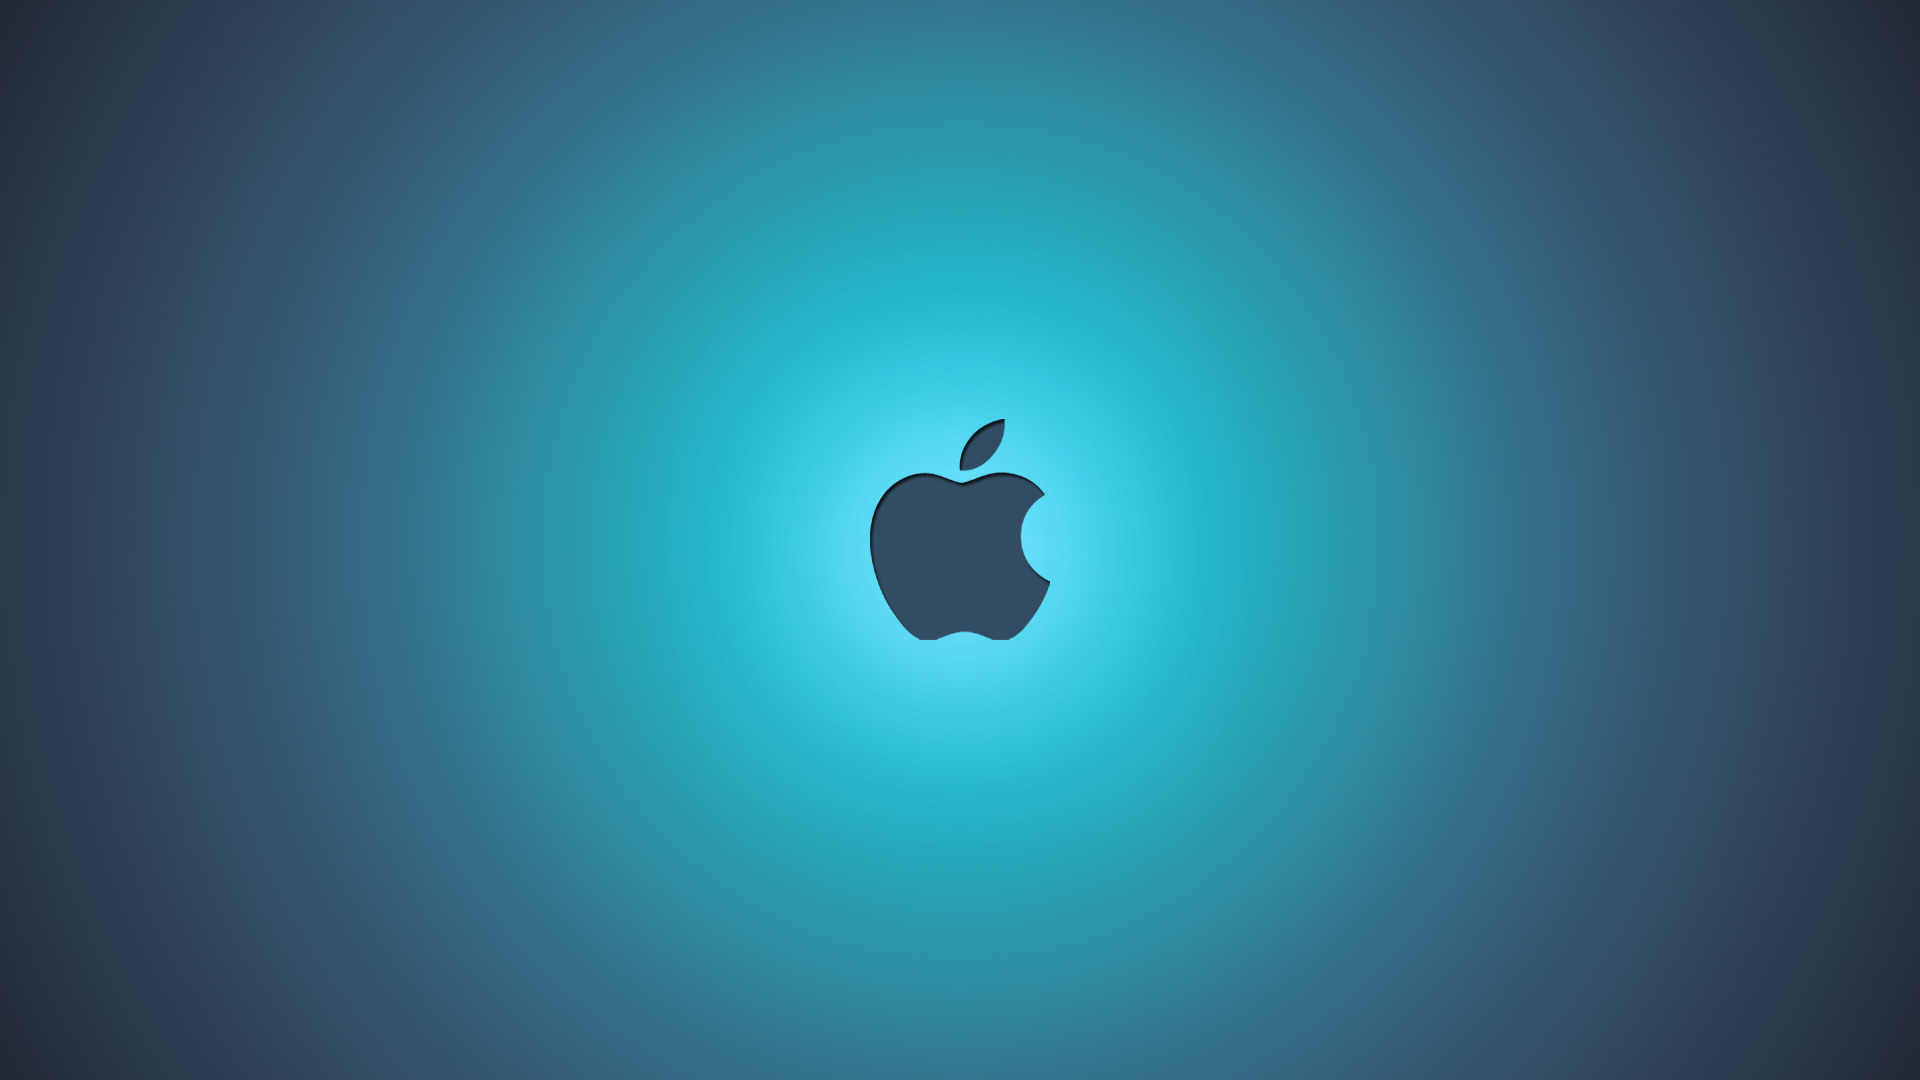 Apple Blue Background Wallpaper Desktop 6250 Wallpaper 1920x1080